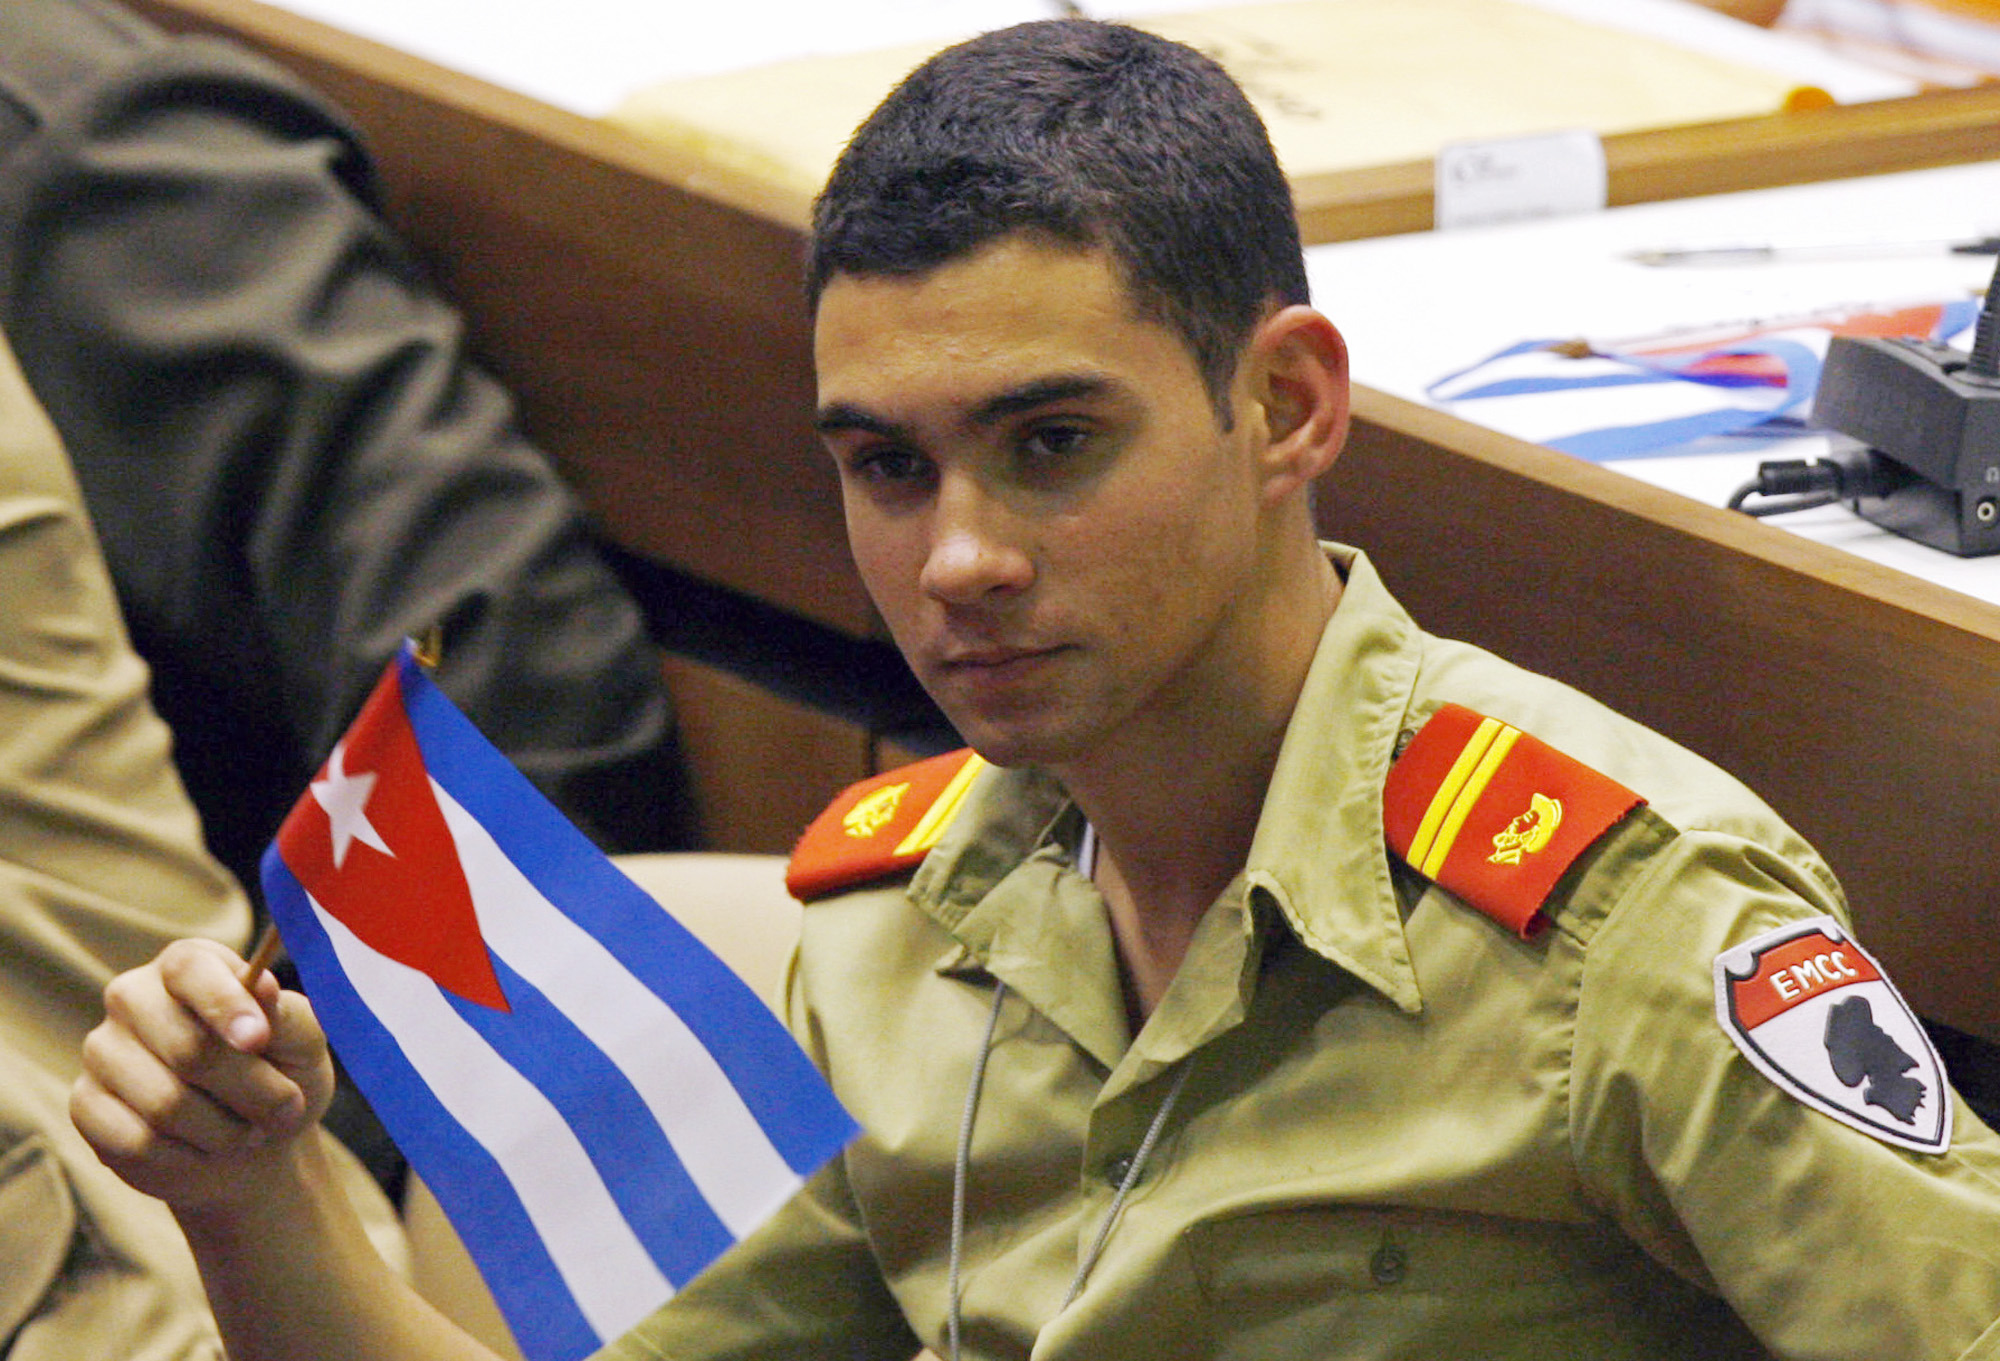 an overview of the emotions and the custody status of elian gonzalez Cubans move to snub dems administration's predawn seizure of elian gonzalez by severing ties to the the emotions also ran high at the desk where mirta.